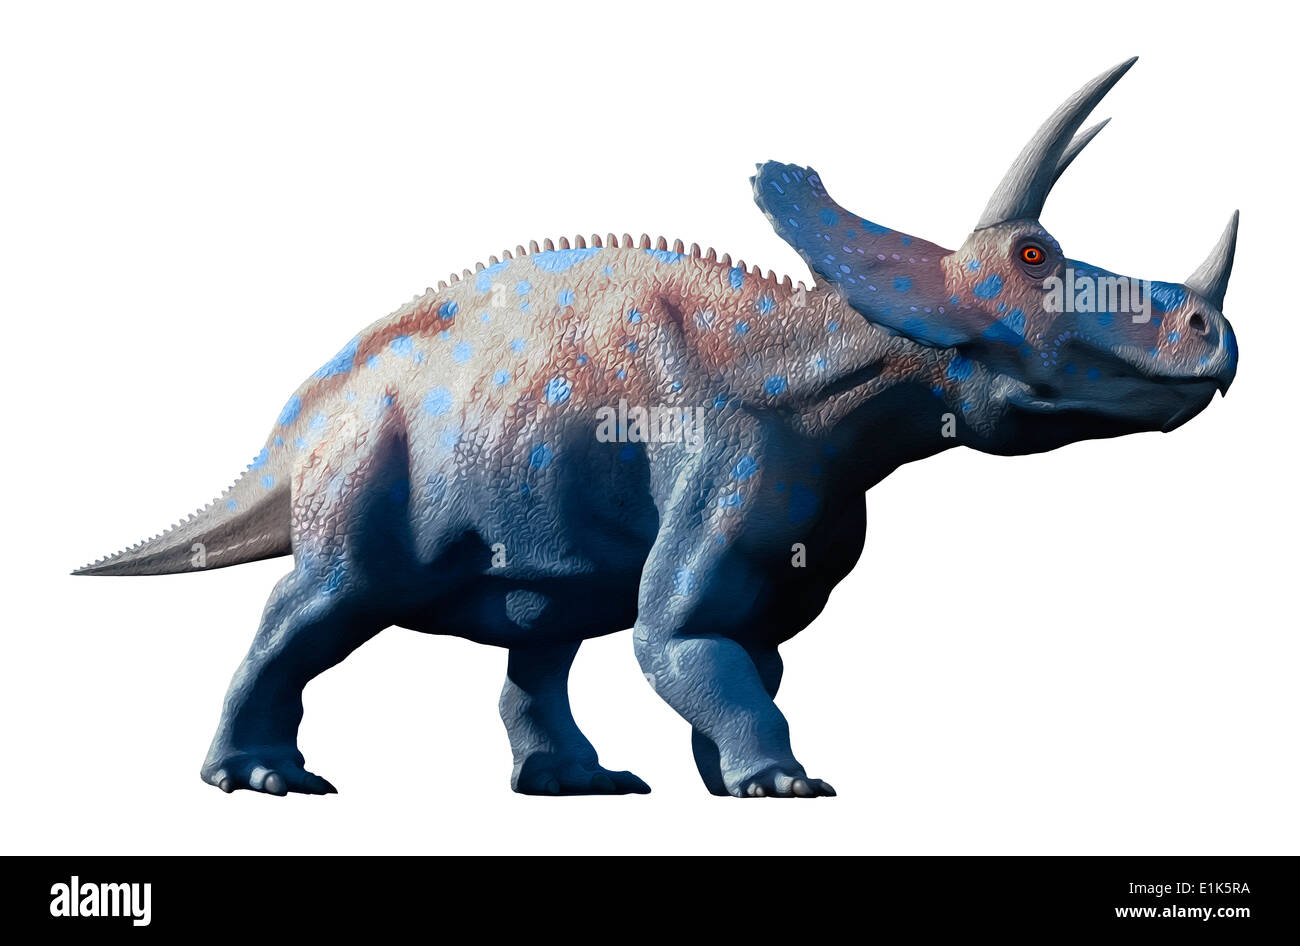 Artwork Of A Herd Triceratops Dinosaurs These Animals Were Common In The Late Cretaceous Period